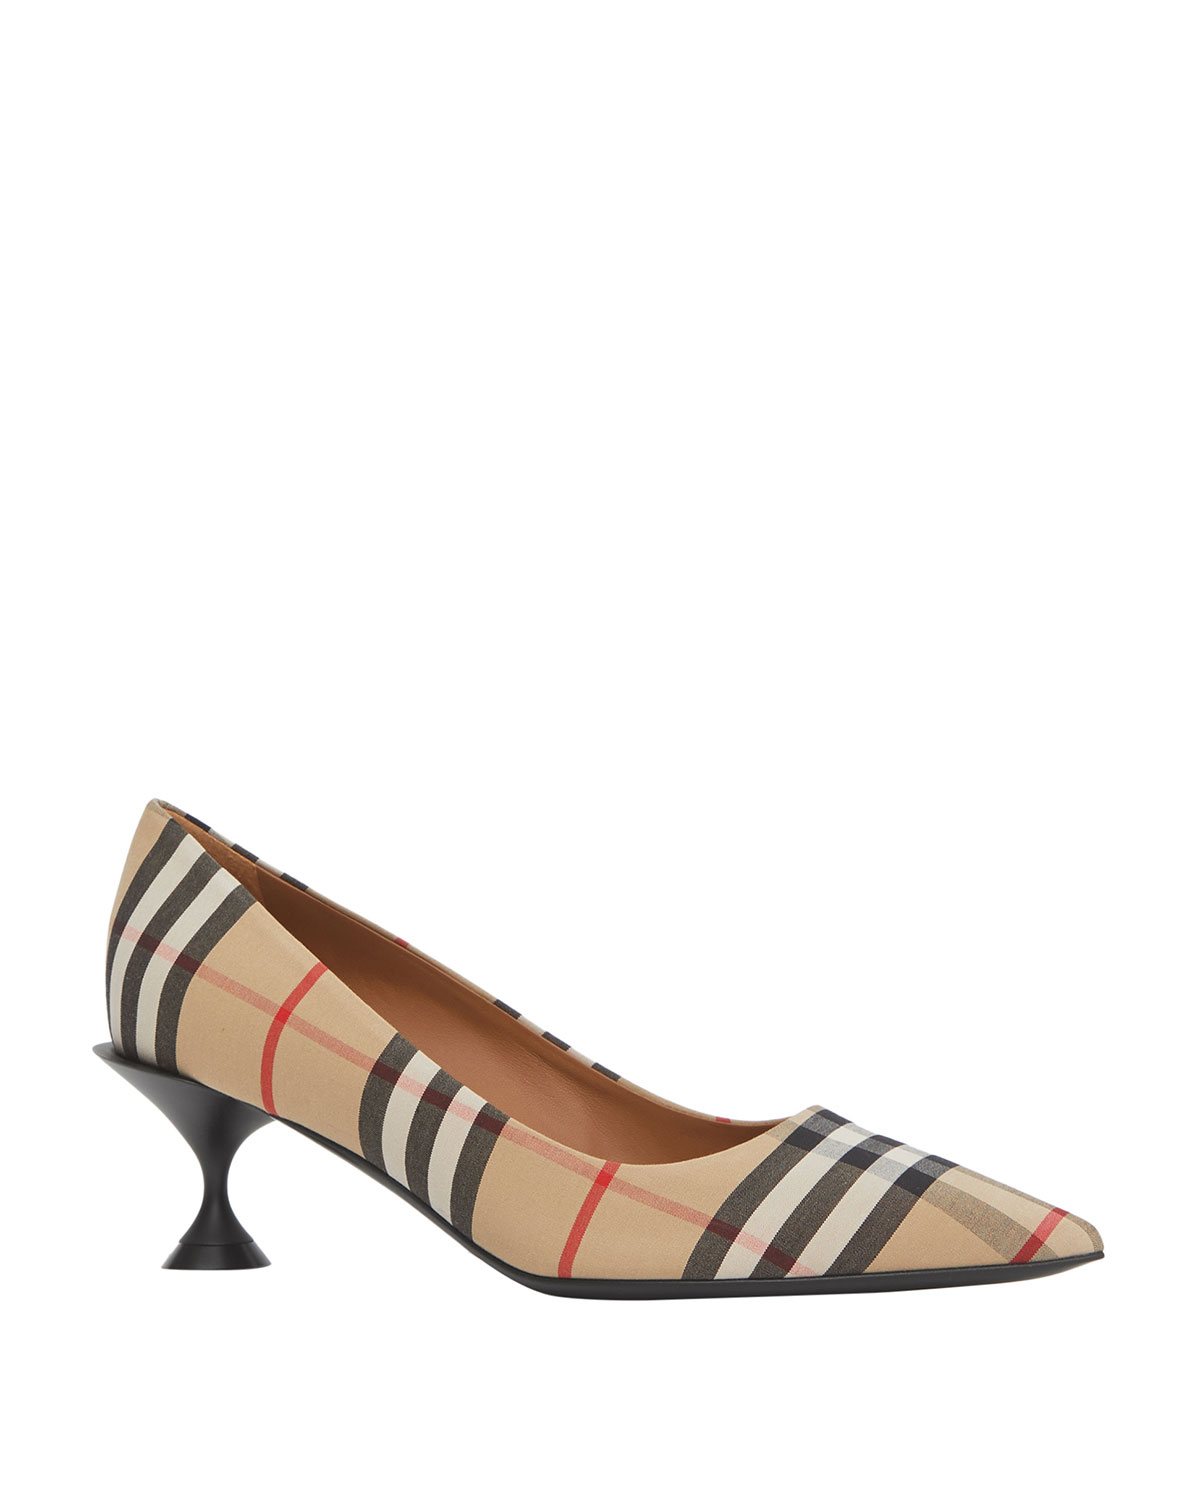 Burberry Pumps LILLYTON CHECK POINTED PUMPS